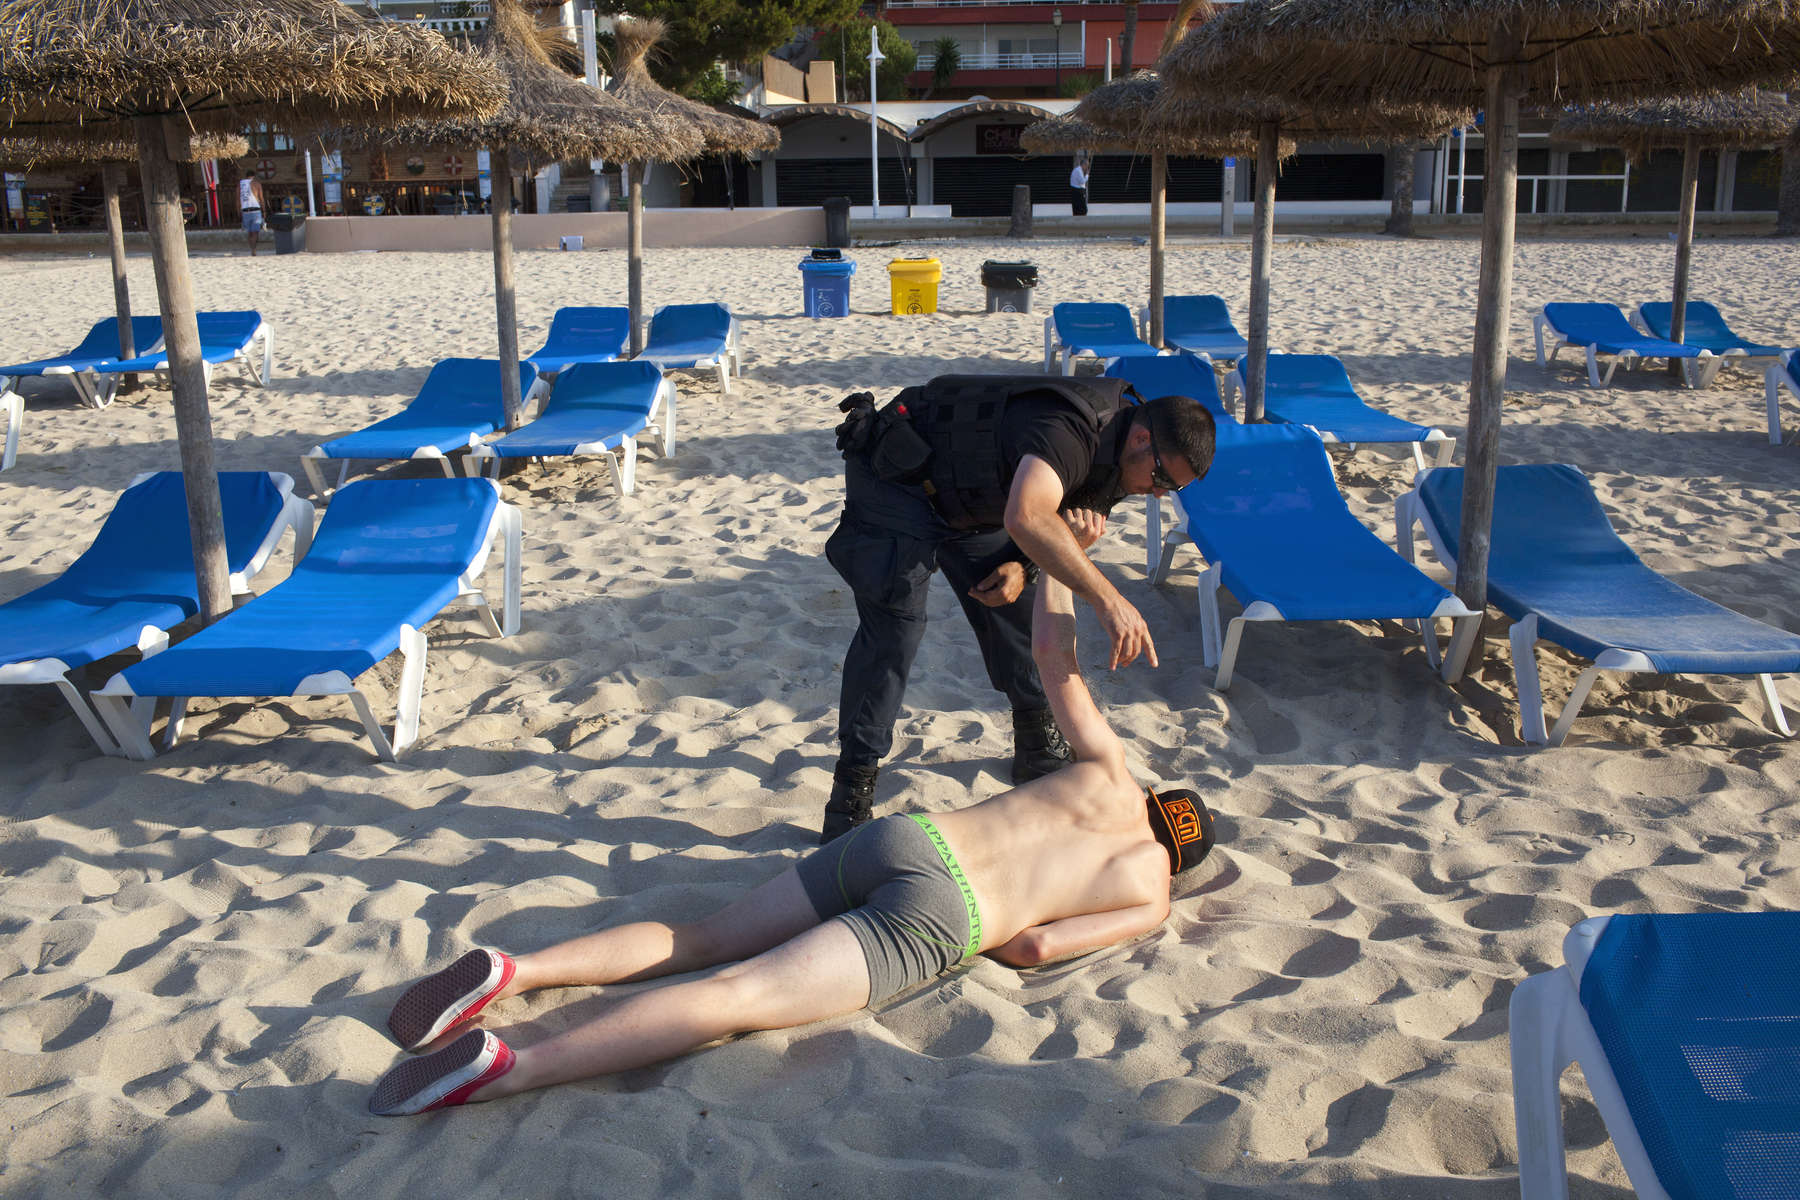 08:04 32 year old security officer George, tries to wake a British man found slumped on the beach in Magaluf, Majorca. George works a nine hour shift, seven days a week, five months a year. He patrols the beach alone, armed with only a baton and five years experience. At around 06:30 each morning, George starts to clear the beach of people who have chosen to sleep there or who have collapsed on it.